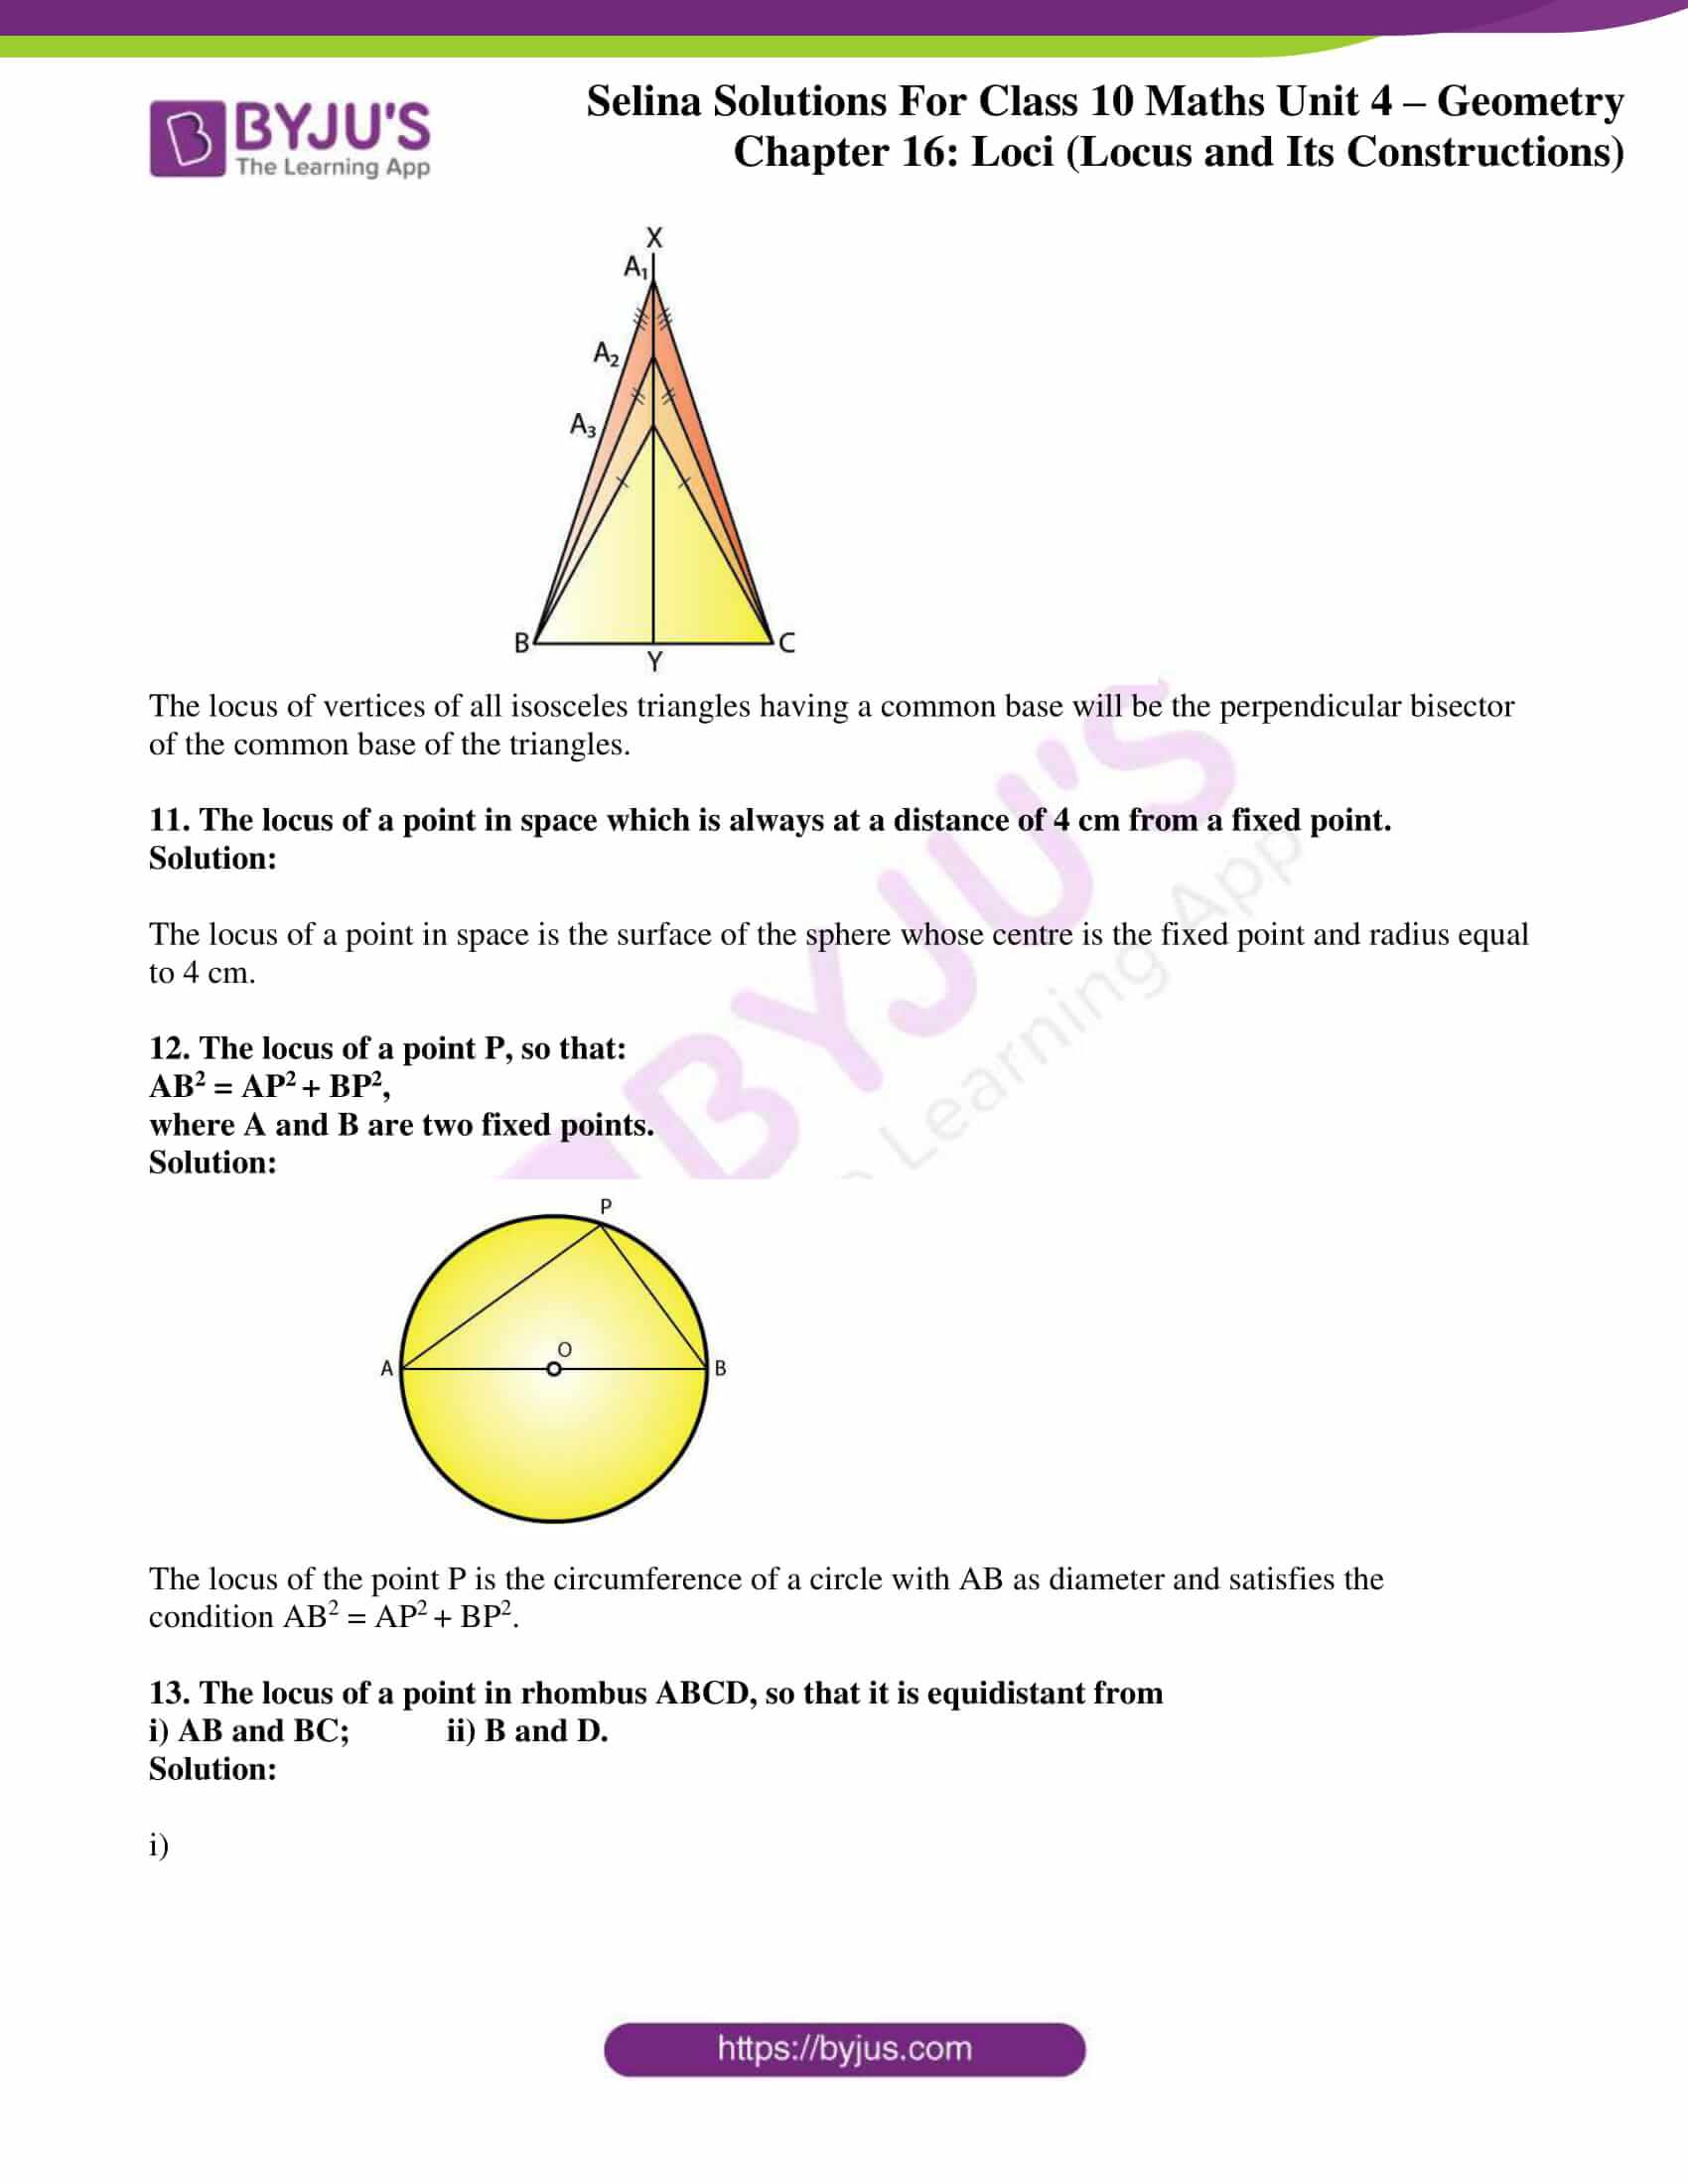 selina solution concise maths class 10 chapter 16 ex b 4